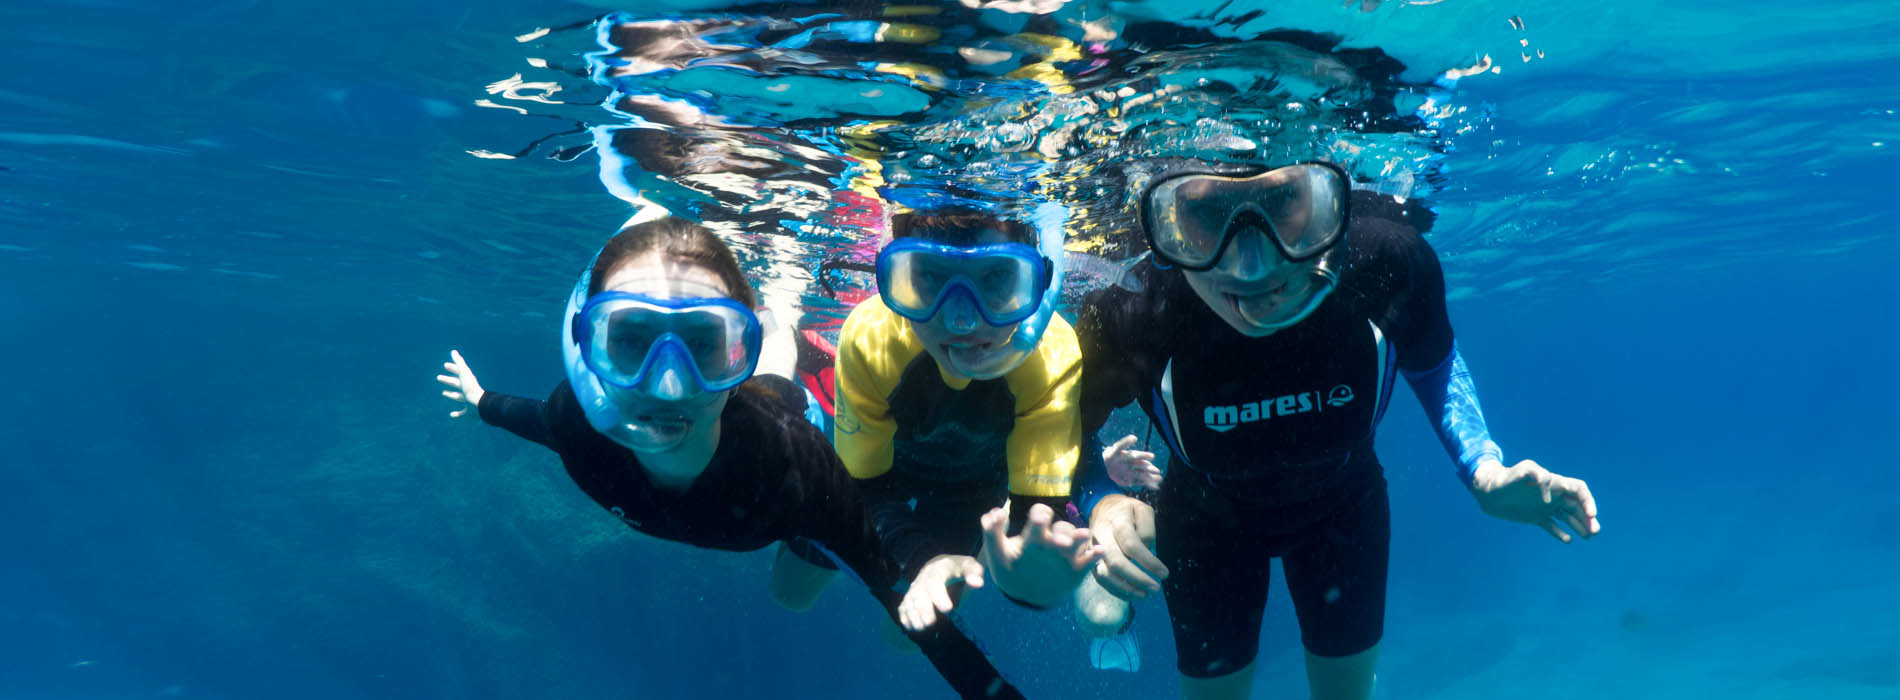 Boat Tour from Sorrento including guided snorkelling with a marine biologist (5-hour duration with 2 dives)